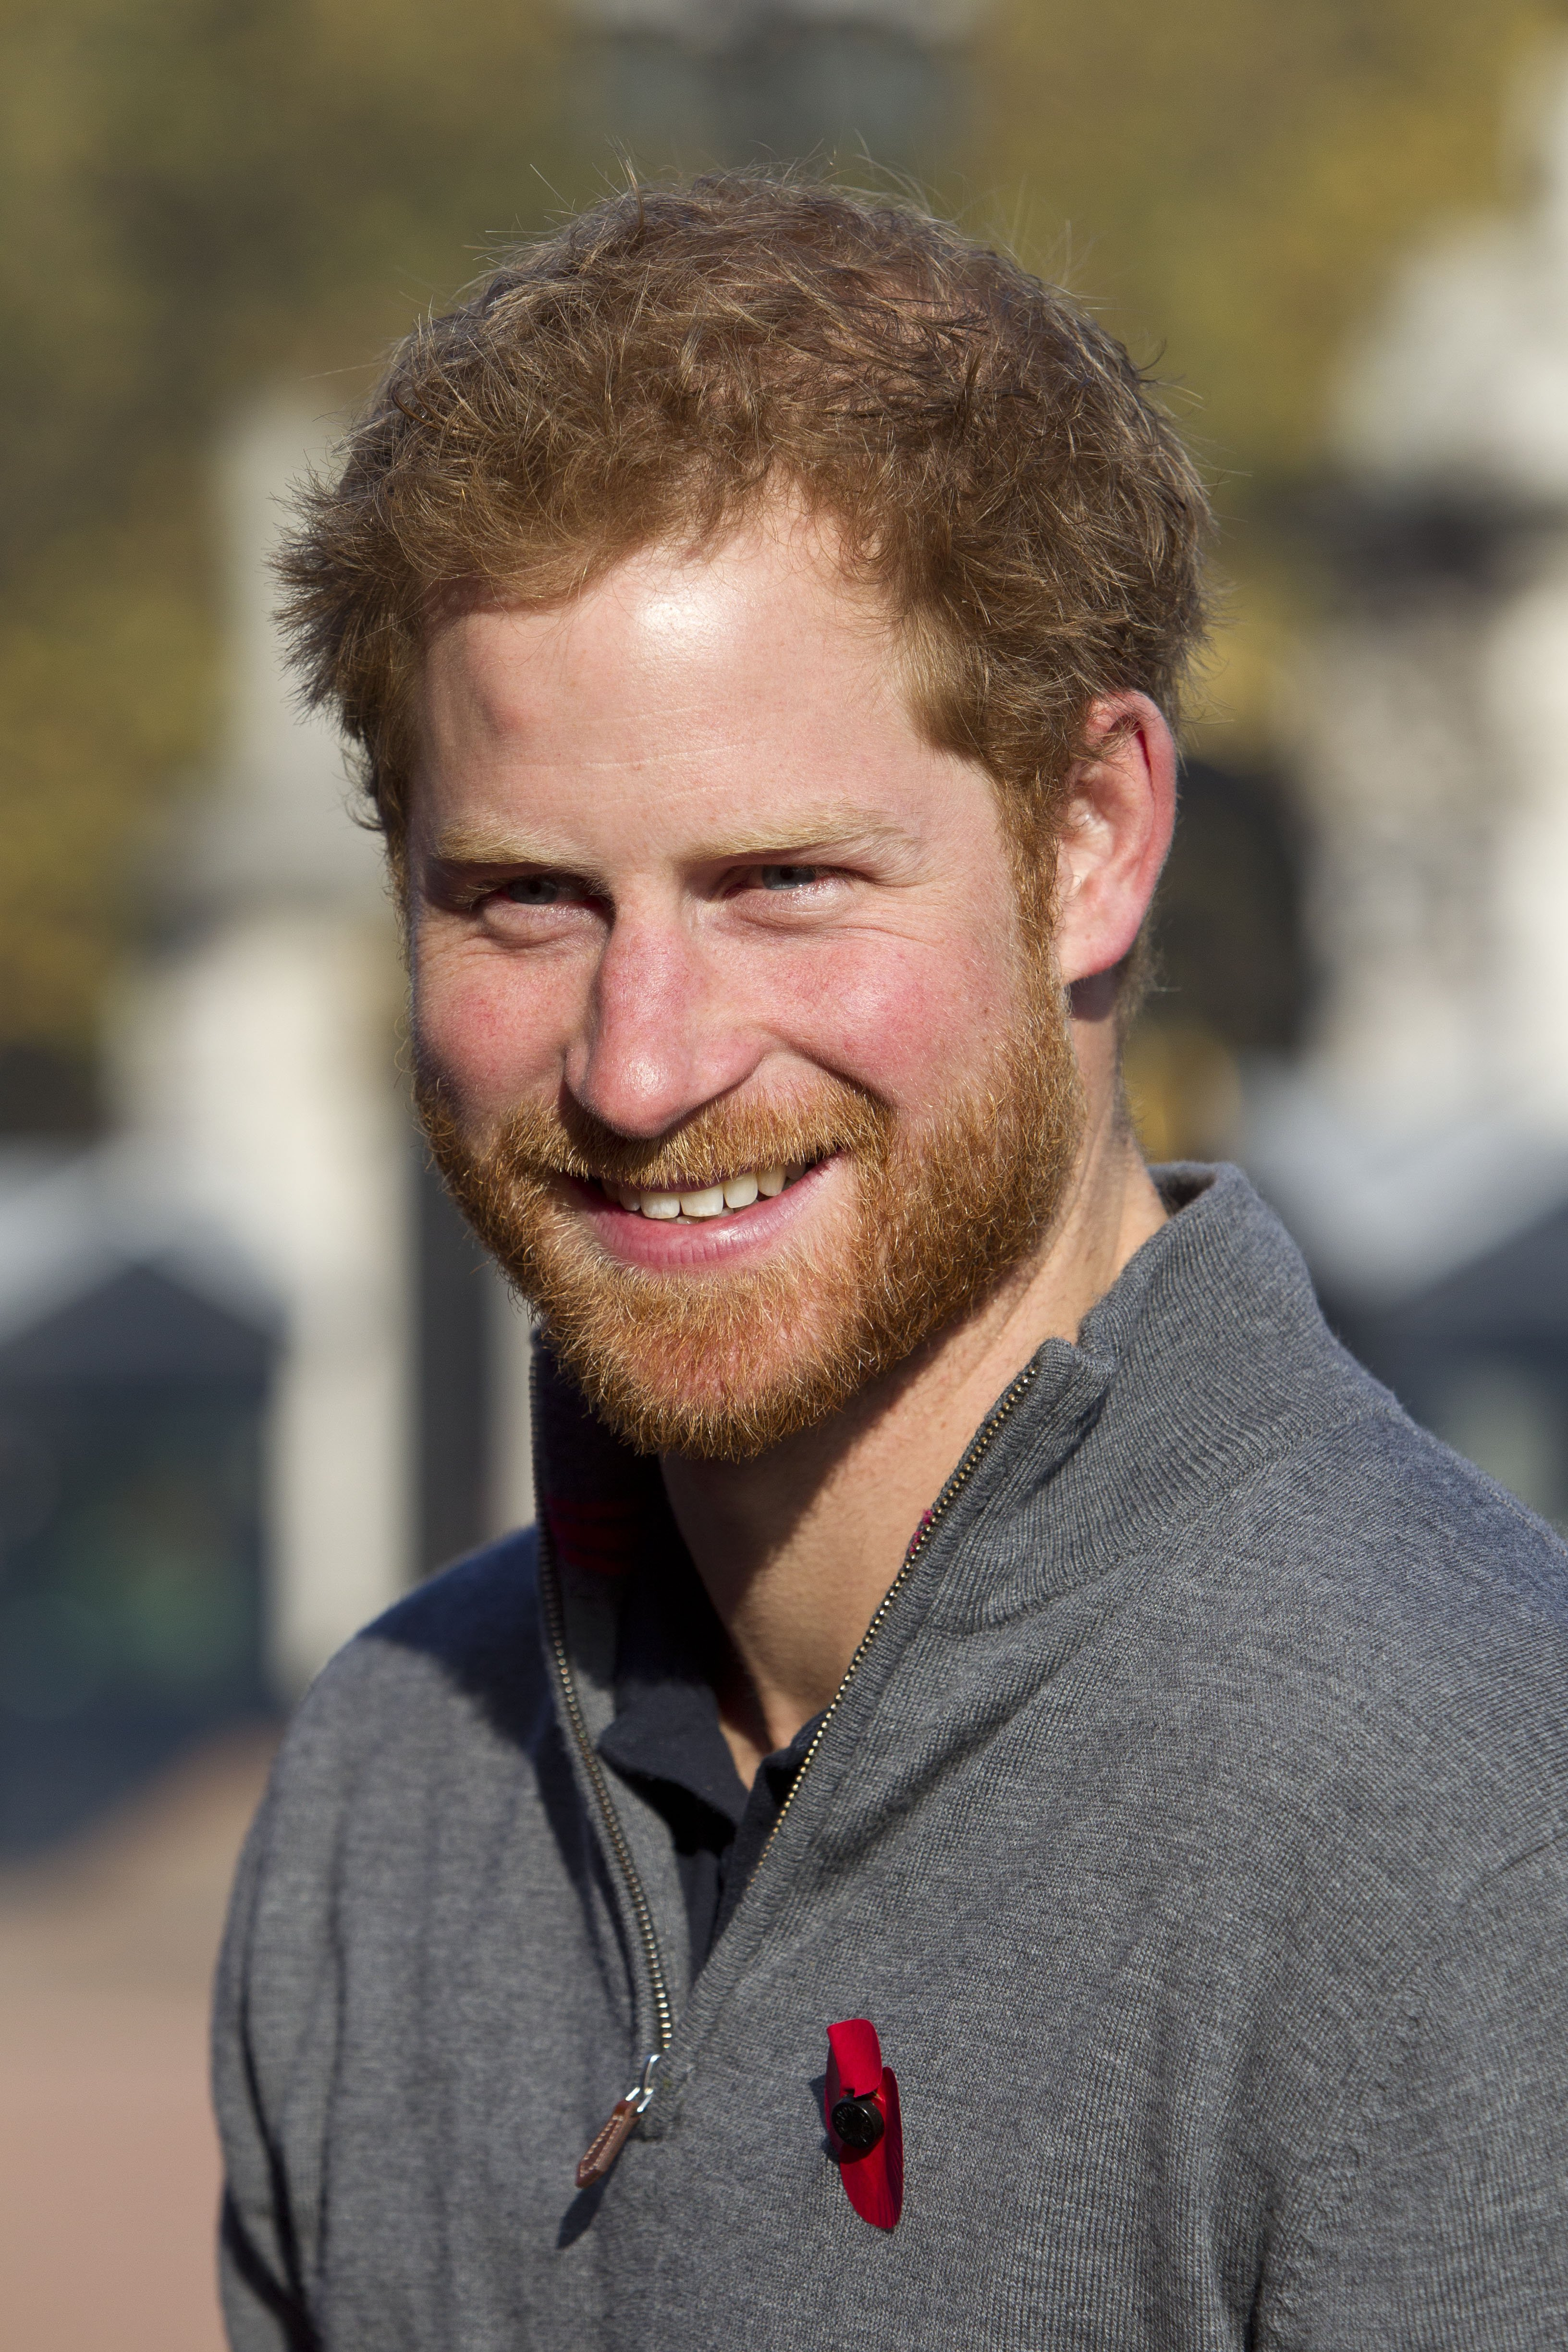 Prince Harry meets with members of the Walking With The Wounded team in the forecourt of Buckingham Palace on November 1, 2015 in London, England | Photo: Getty Images